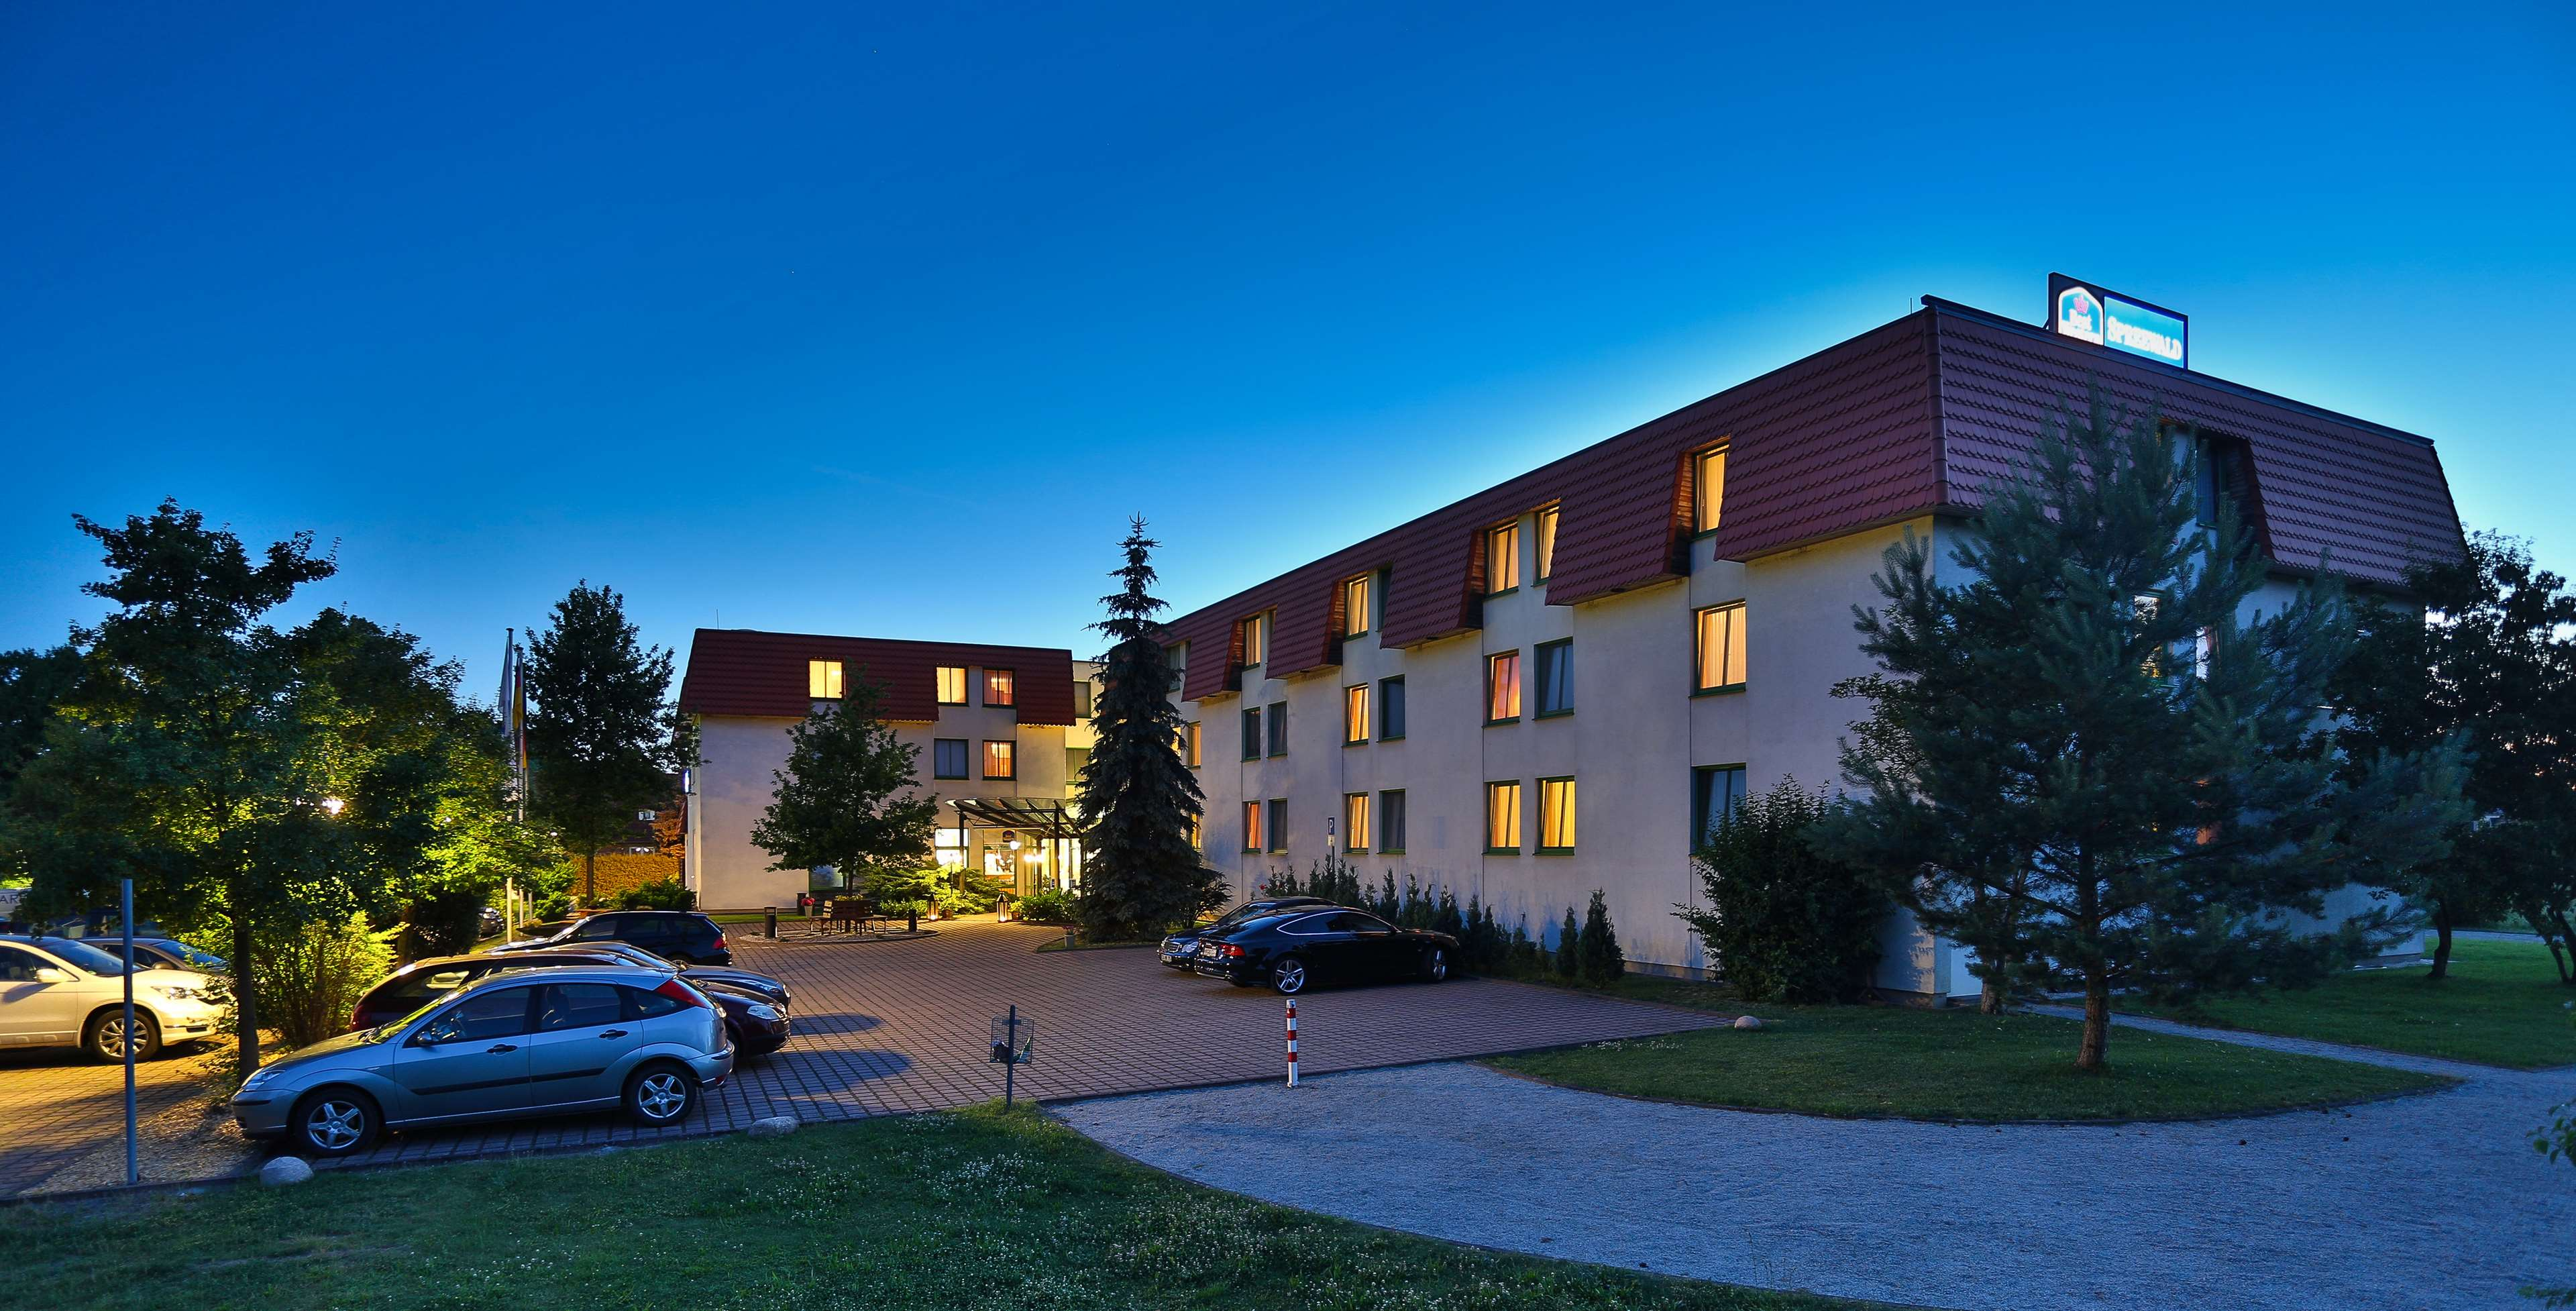 Hotel Best Western In Lubbenau